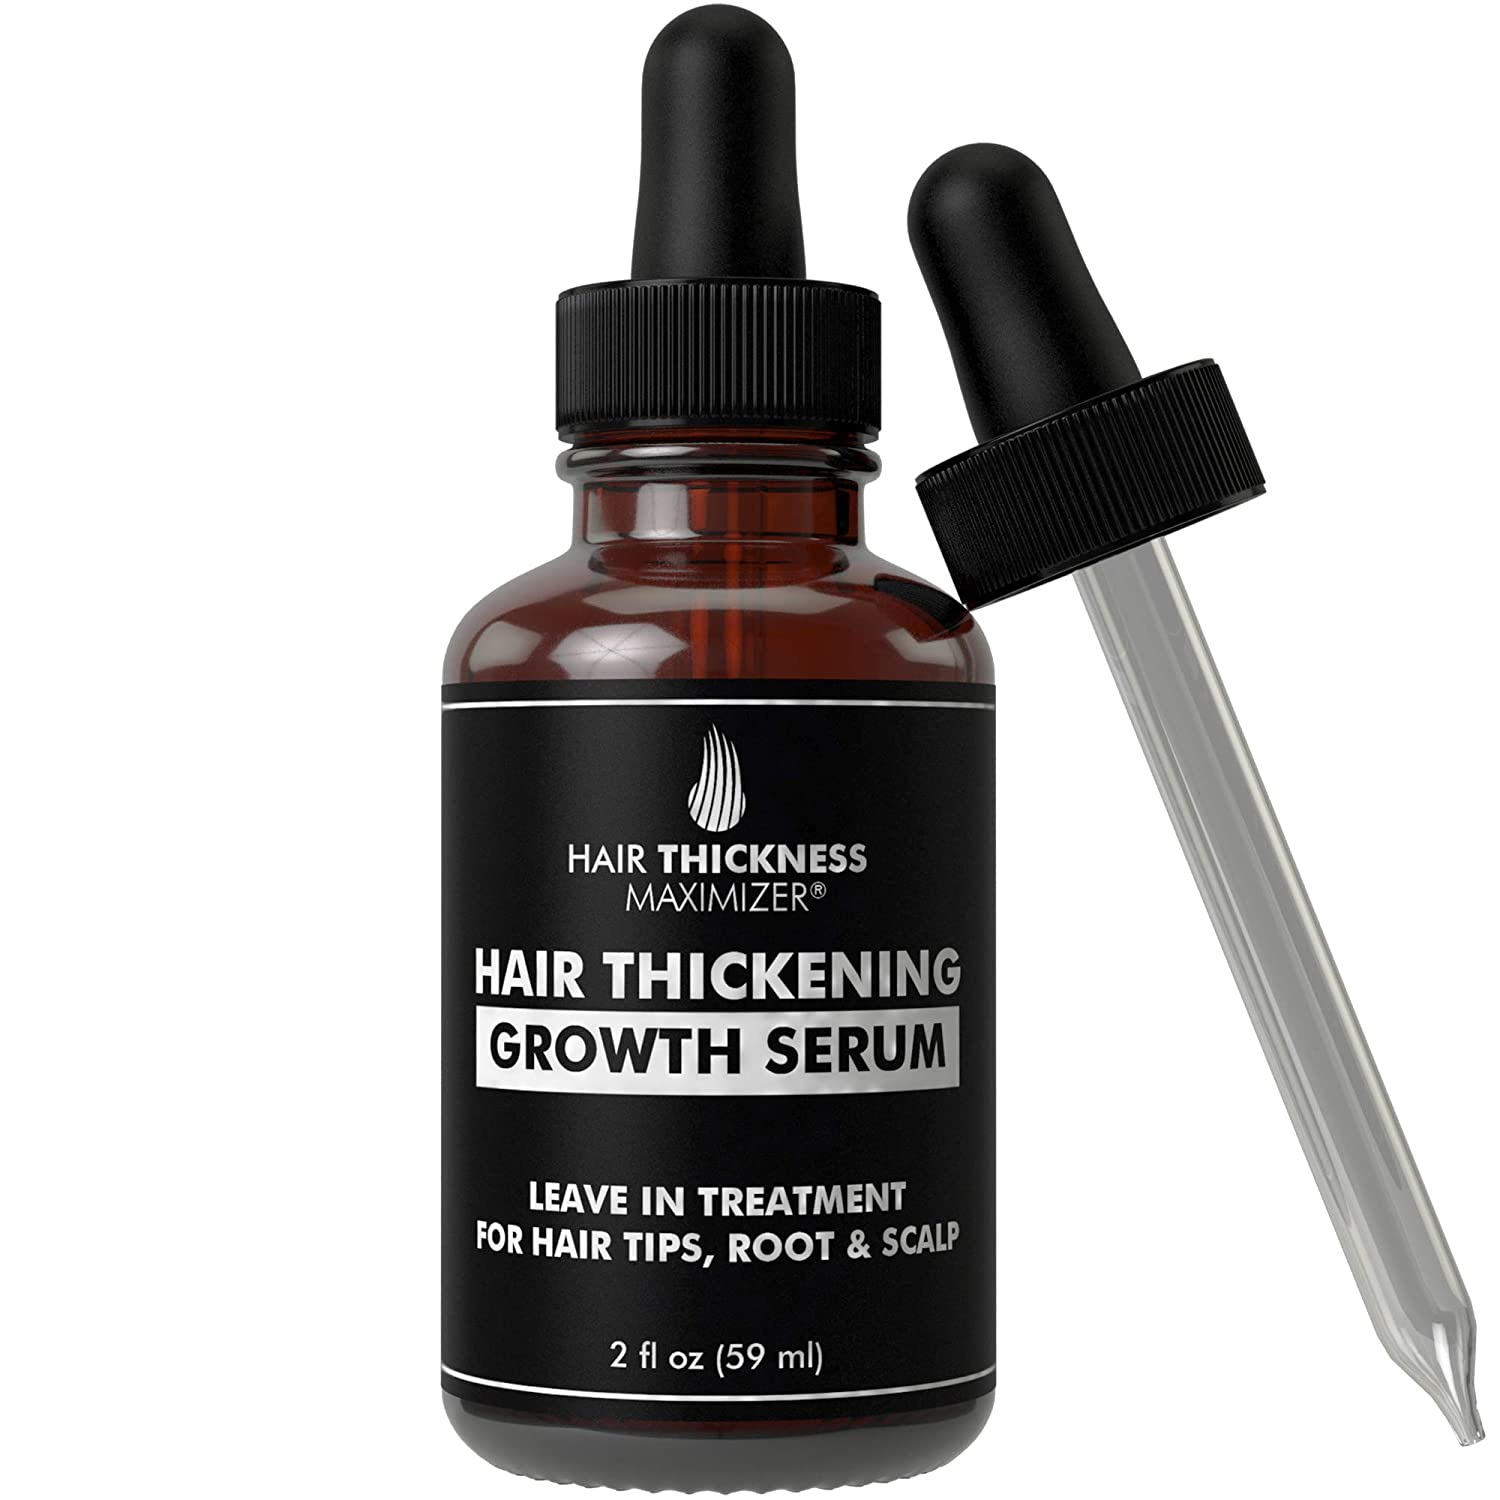 Hair Growth Serum - Hair Loss Prevention Treatment by Hair Thickness Maximizer. Best Natural Oils For Thinning Hair. Replenish Hair Follicles for Men, Women. Thickening Leave In Conditioner Serum 2oz